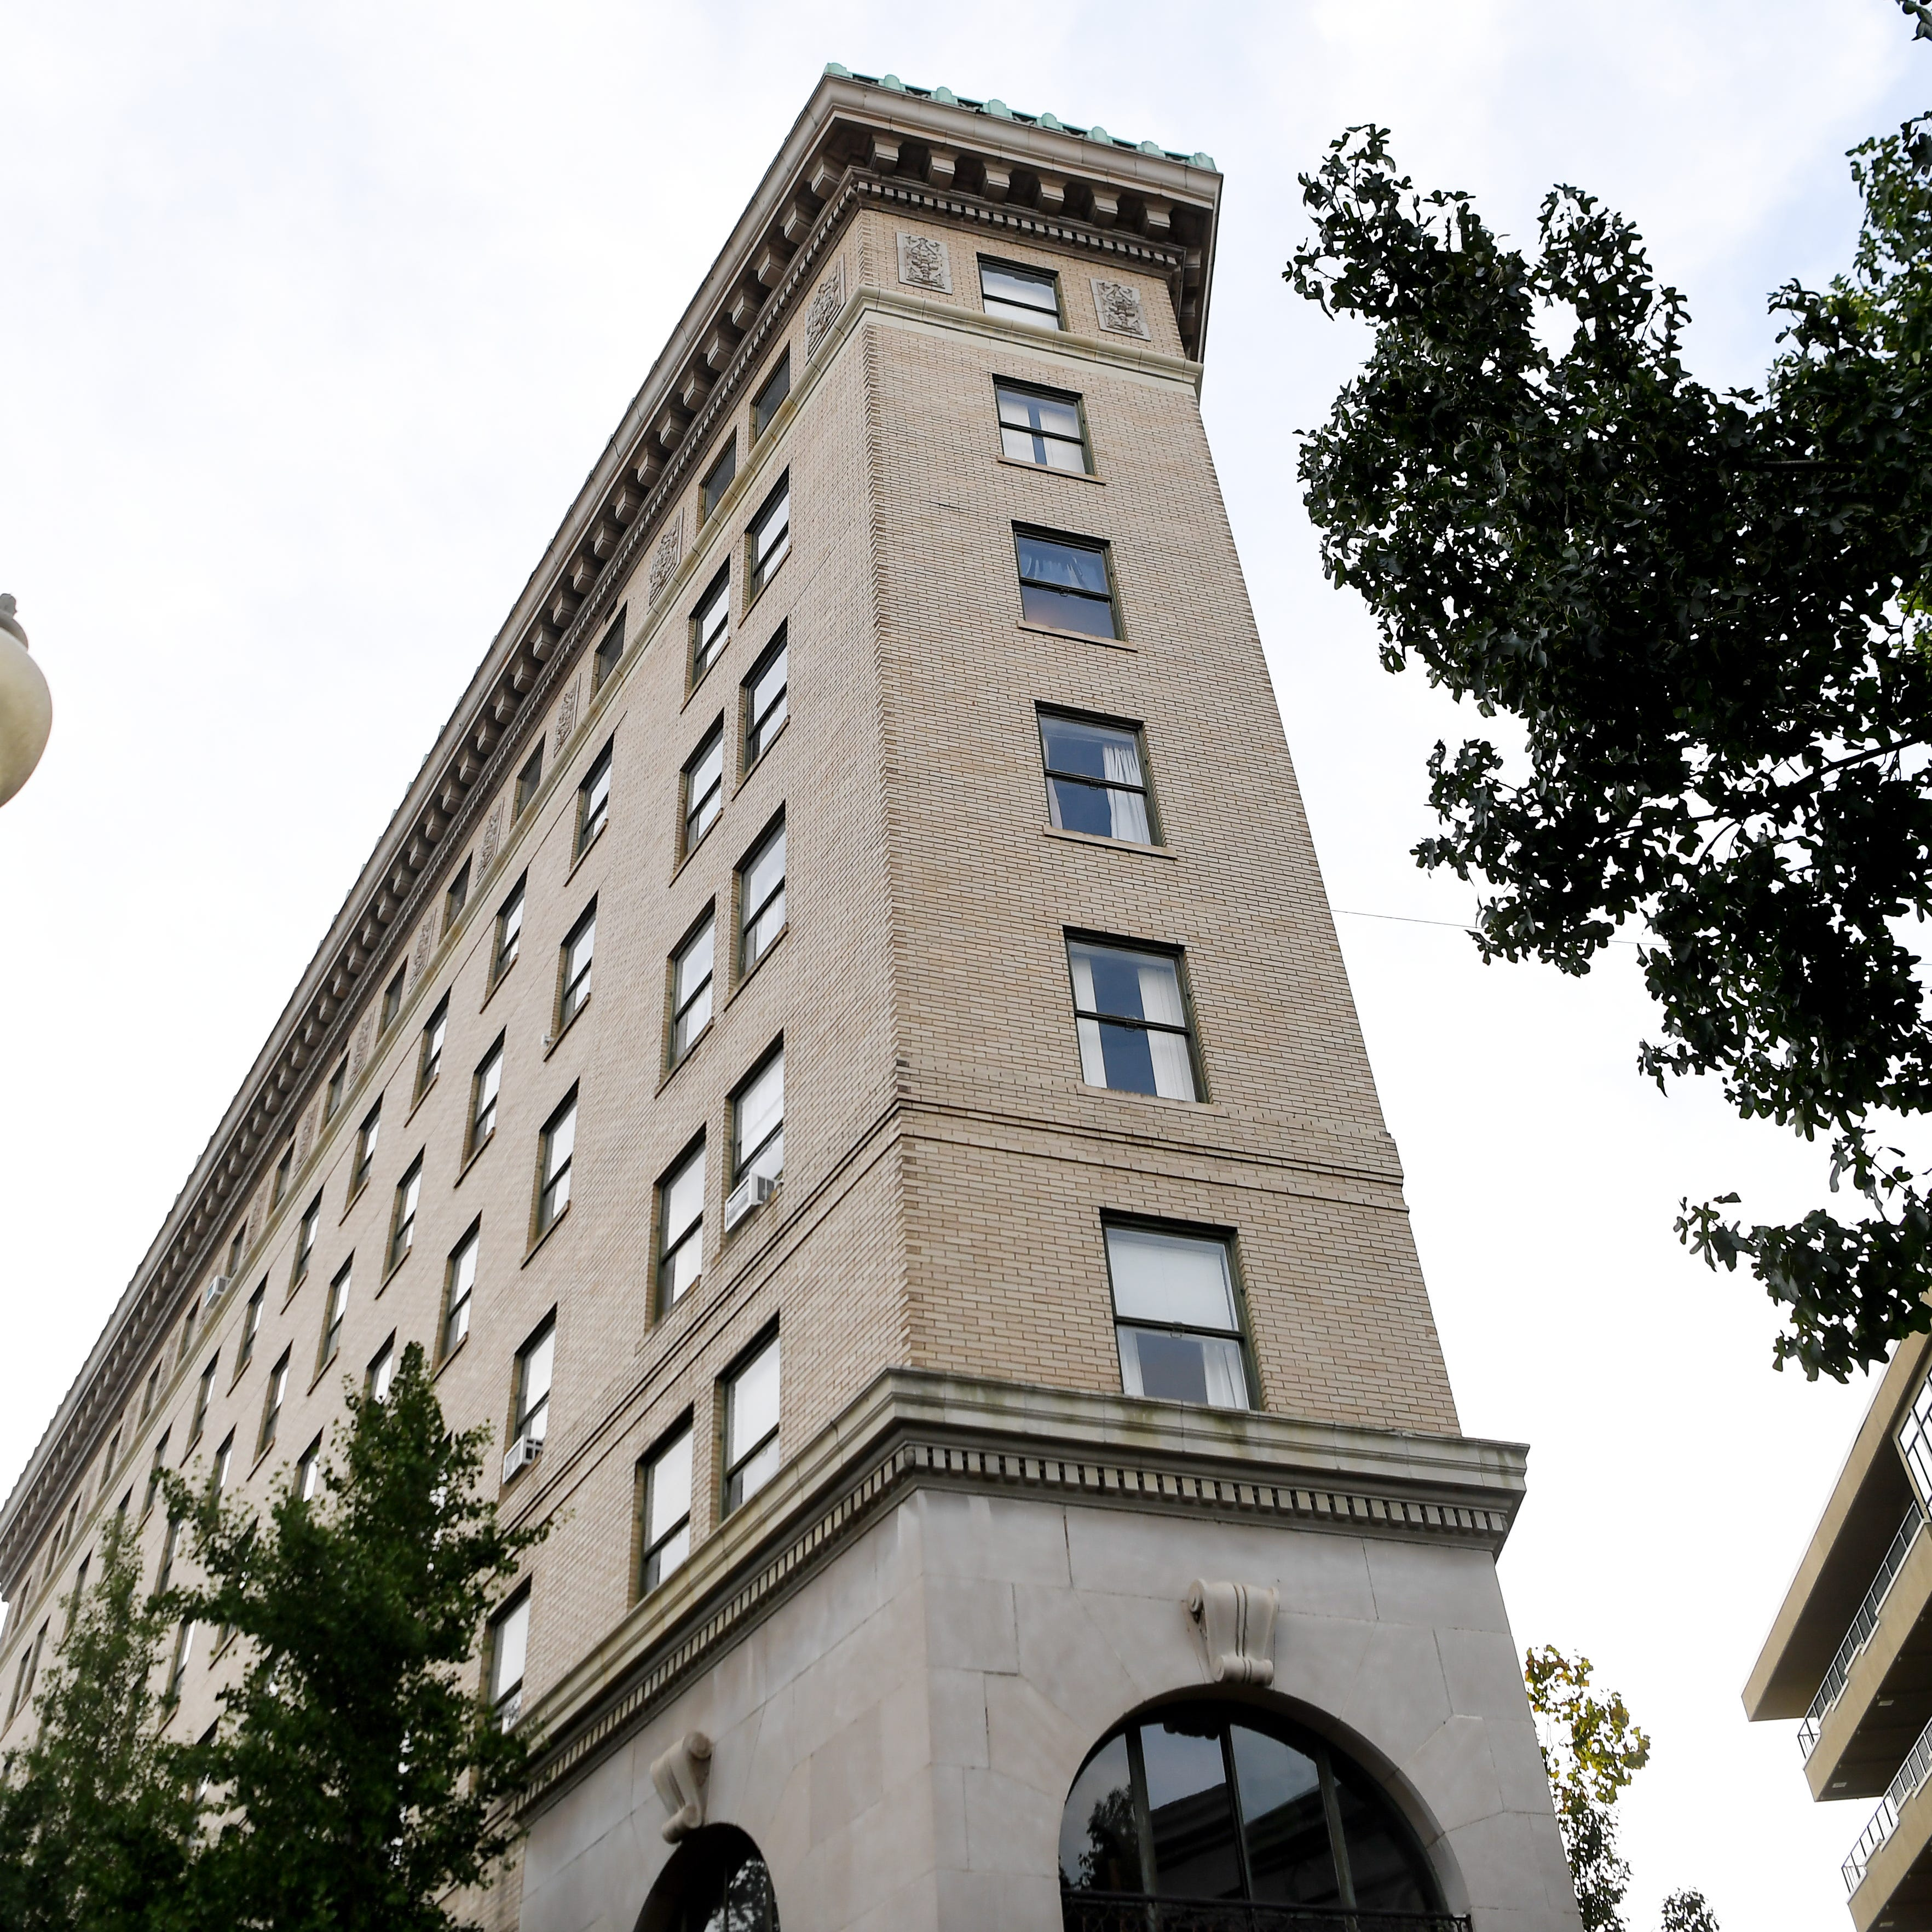 Boyle column: How many hotels do we need in downtown Asheville?